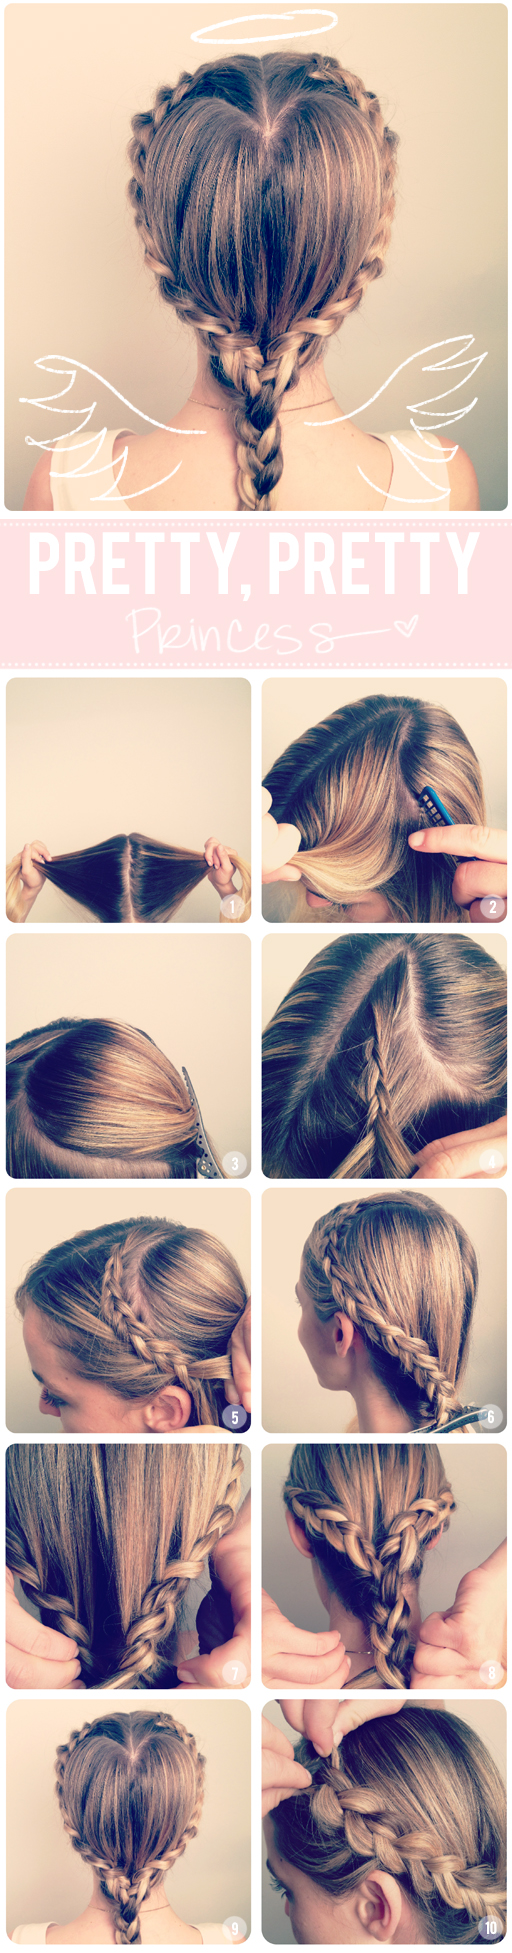 DIY Heart Braid Hairstyle via